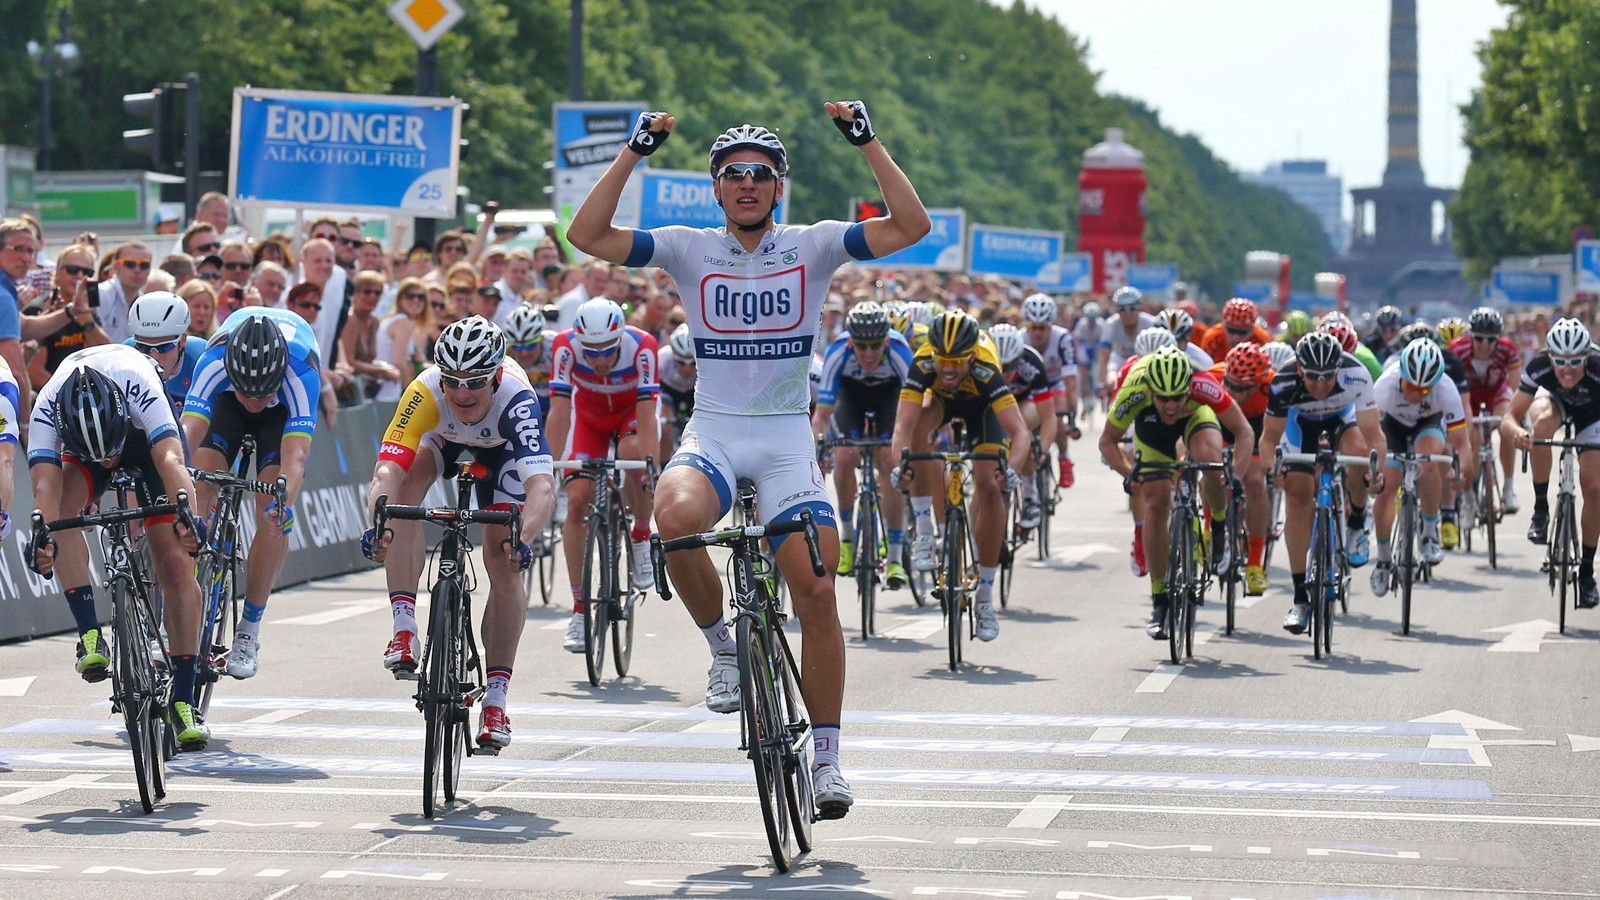 Pros such as Marcel Kittel and Andre Griepel have taken part in the Velothon Berlin event